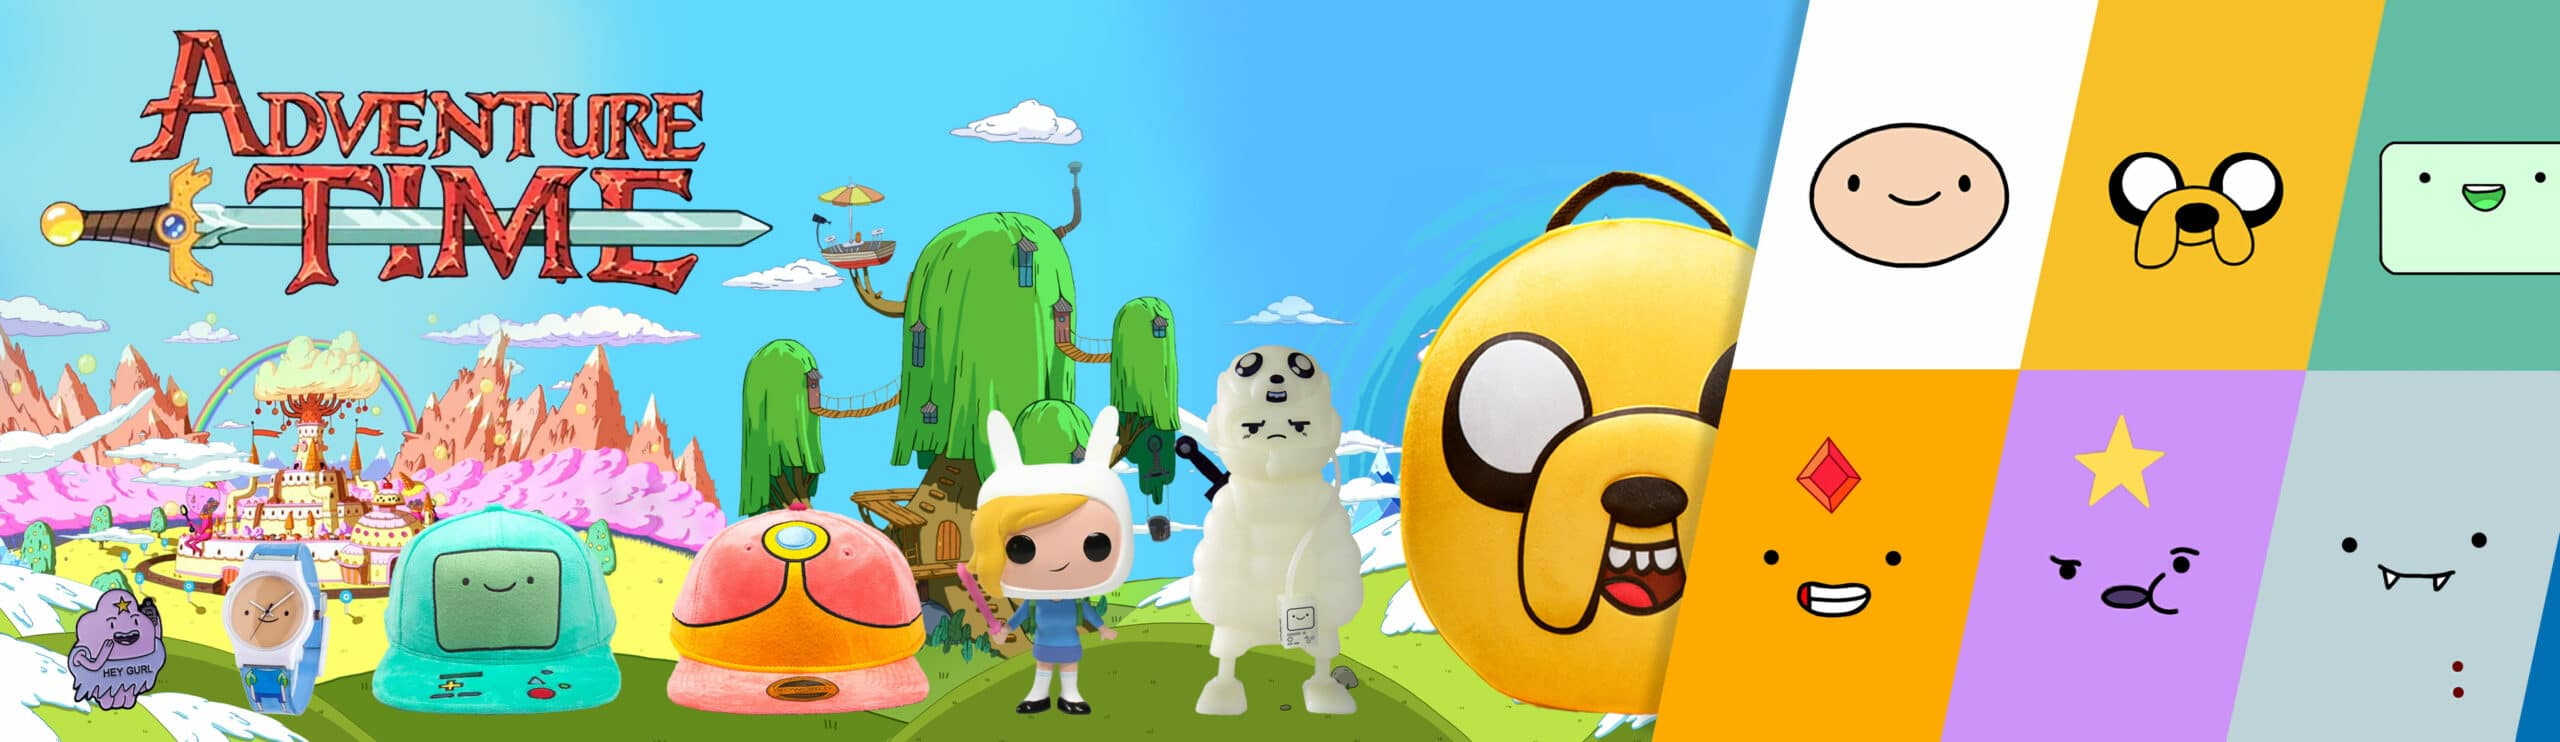 Adventure time product banner